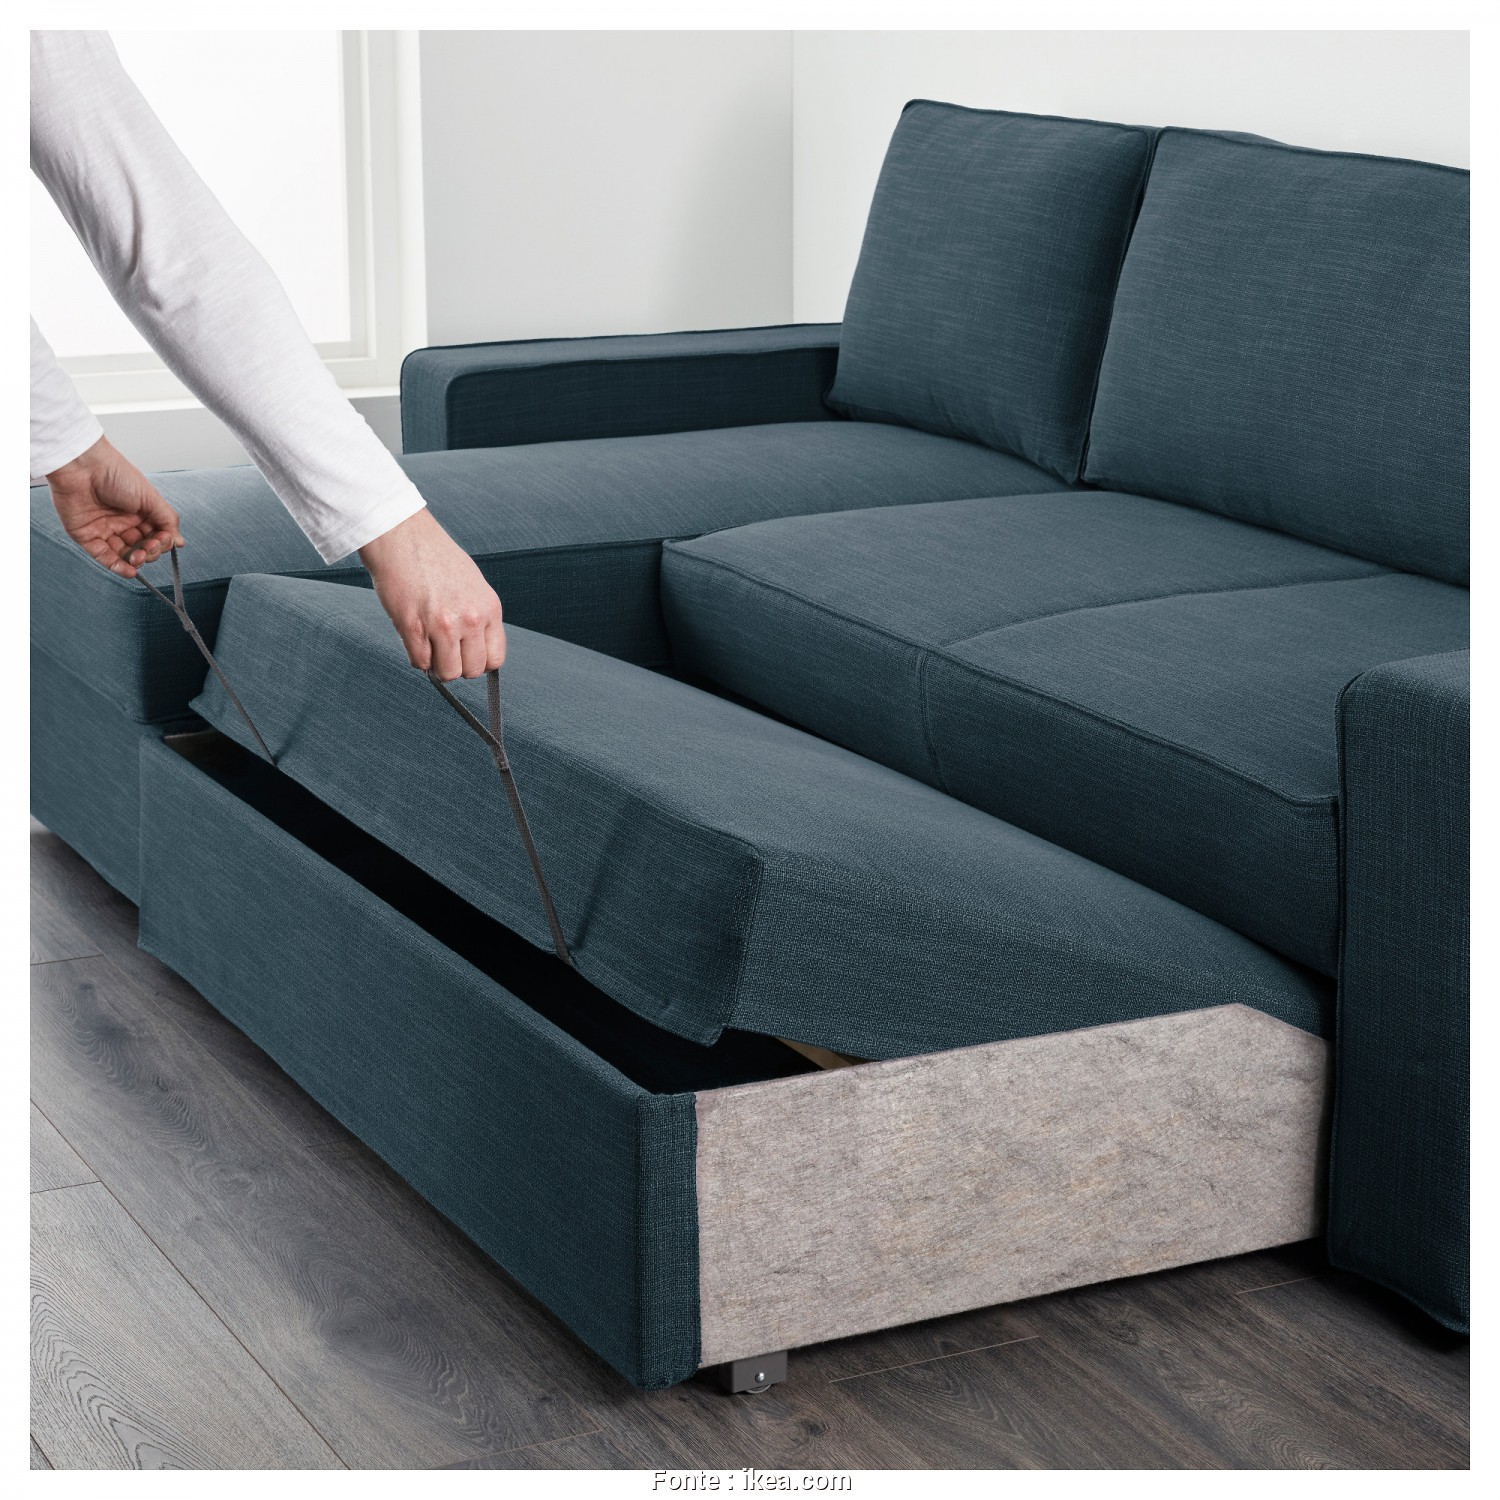 Ikea Vilasund Kanepe, A Buon Mercato VILASUND Sofa, With Chaise Longue Hillared Dark Blue